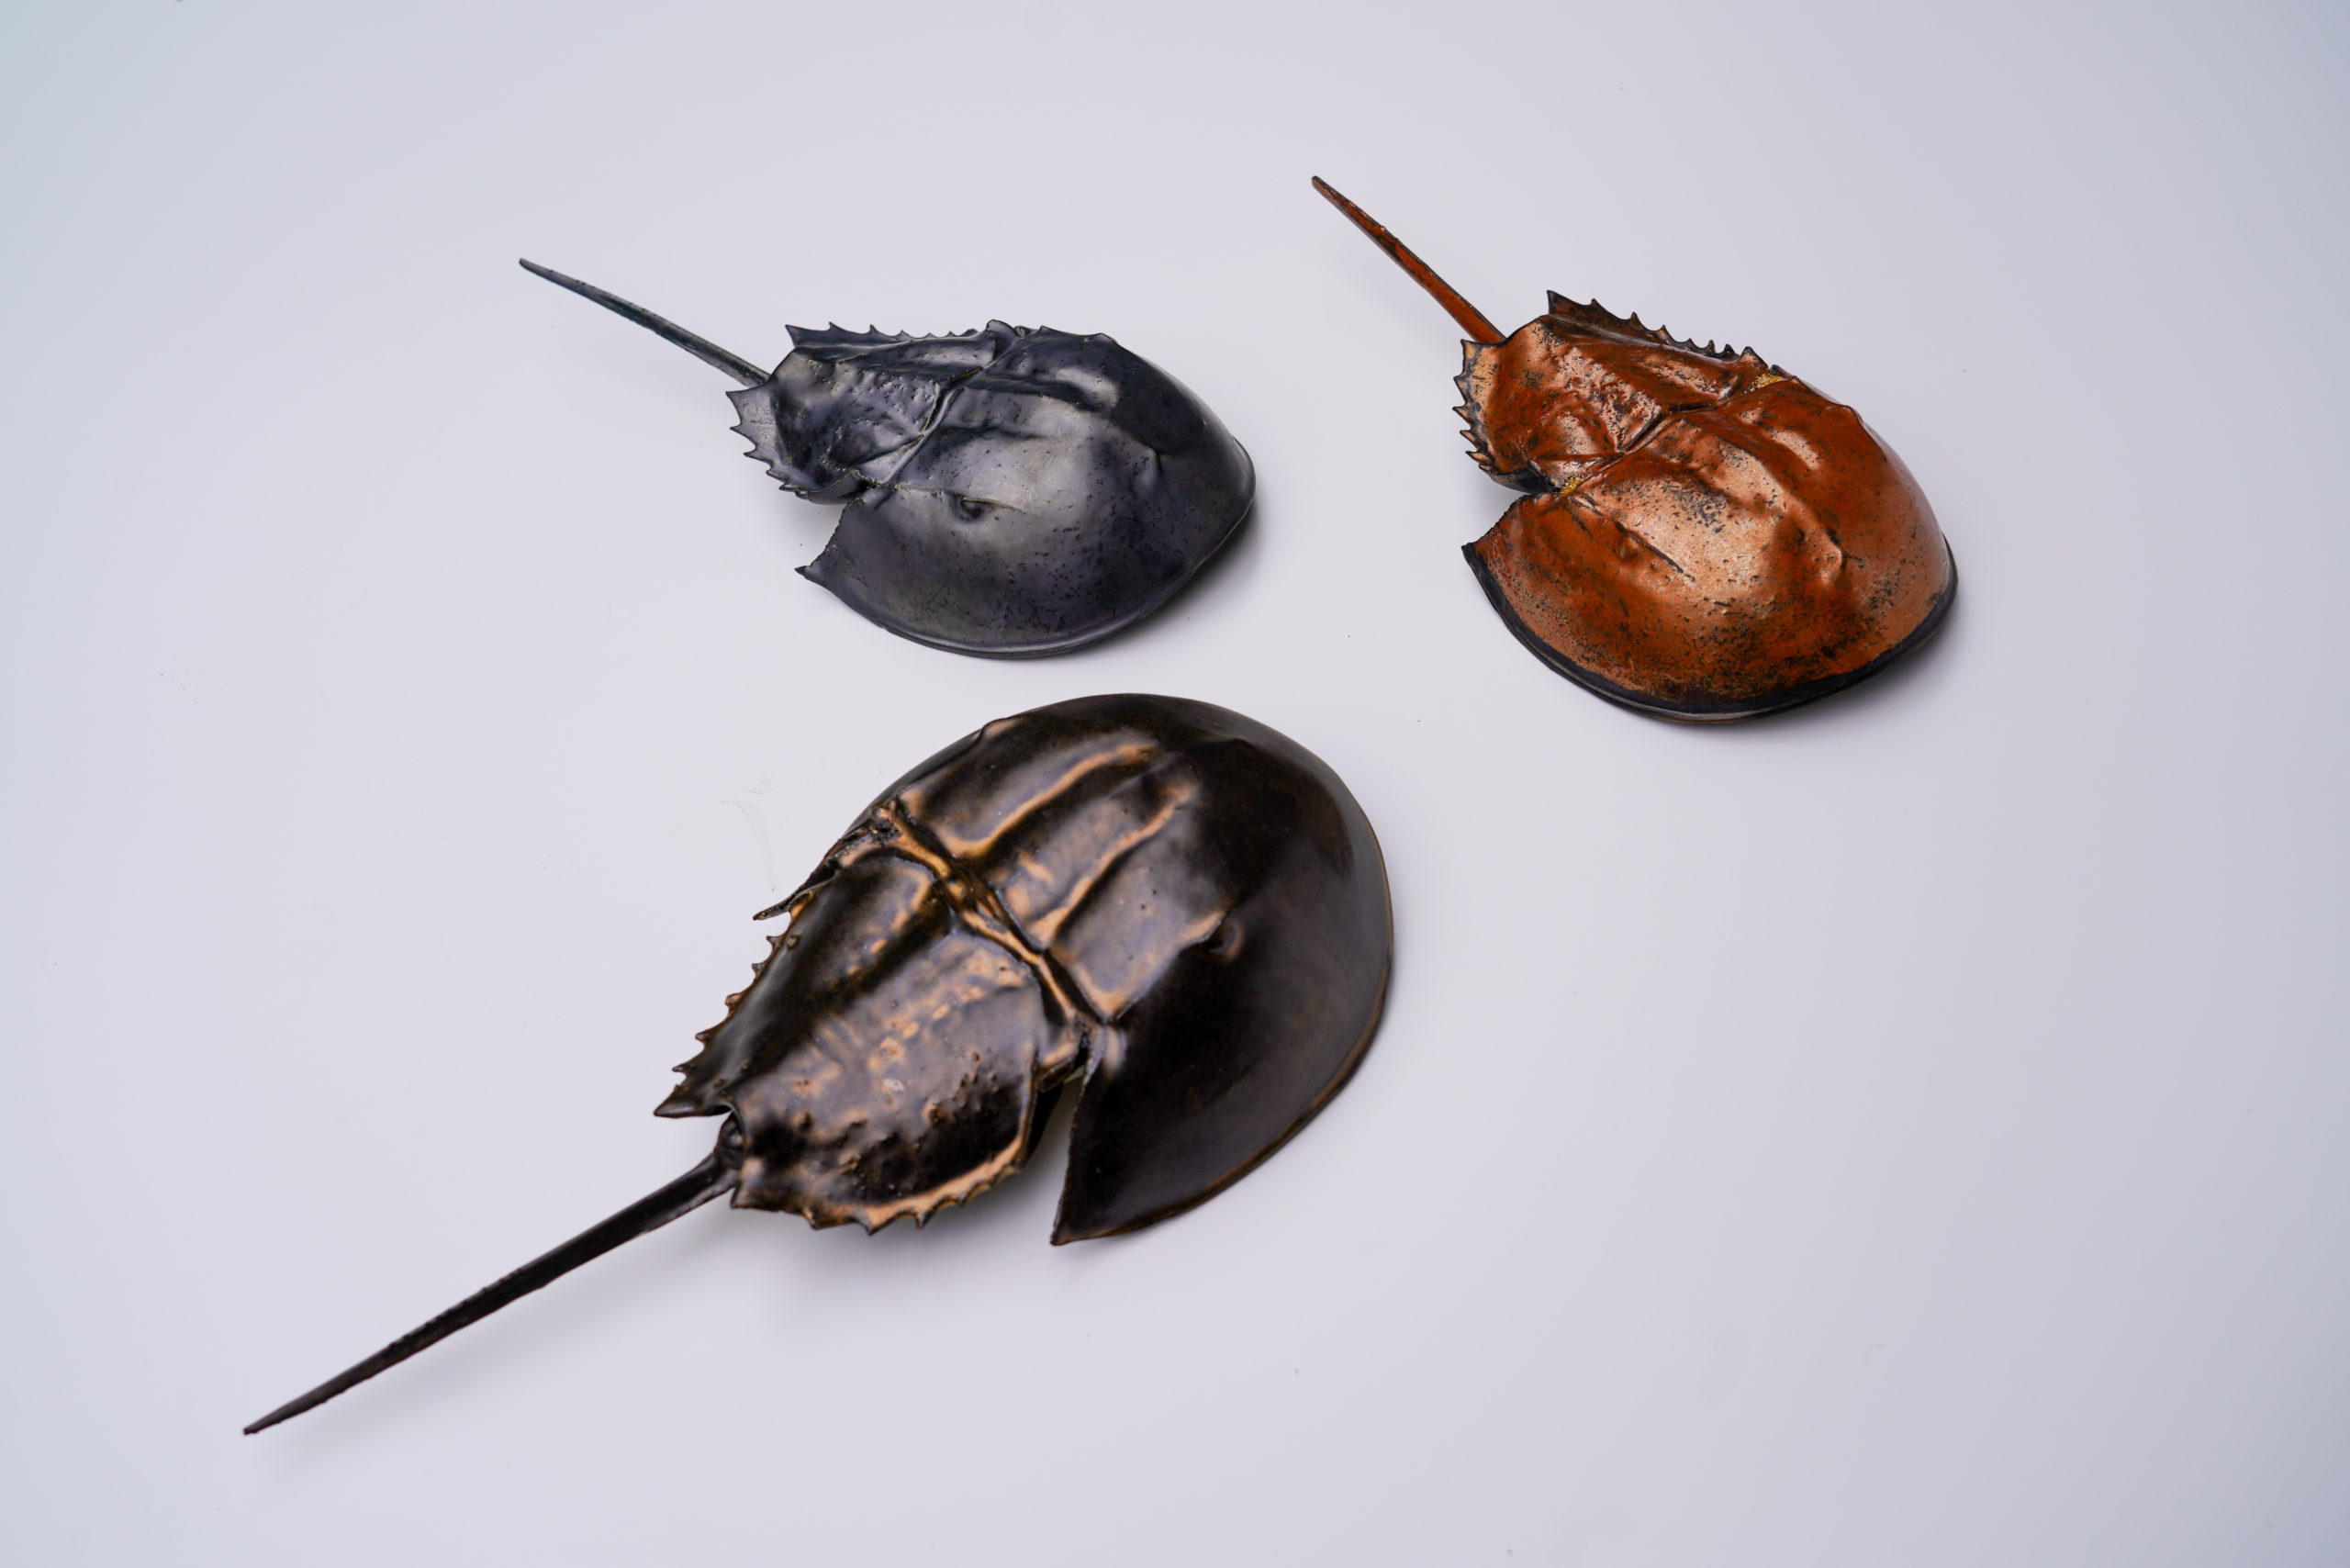 Ceramic Horseshoe Crab